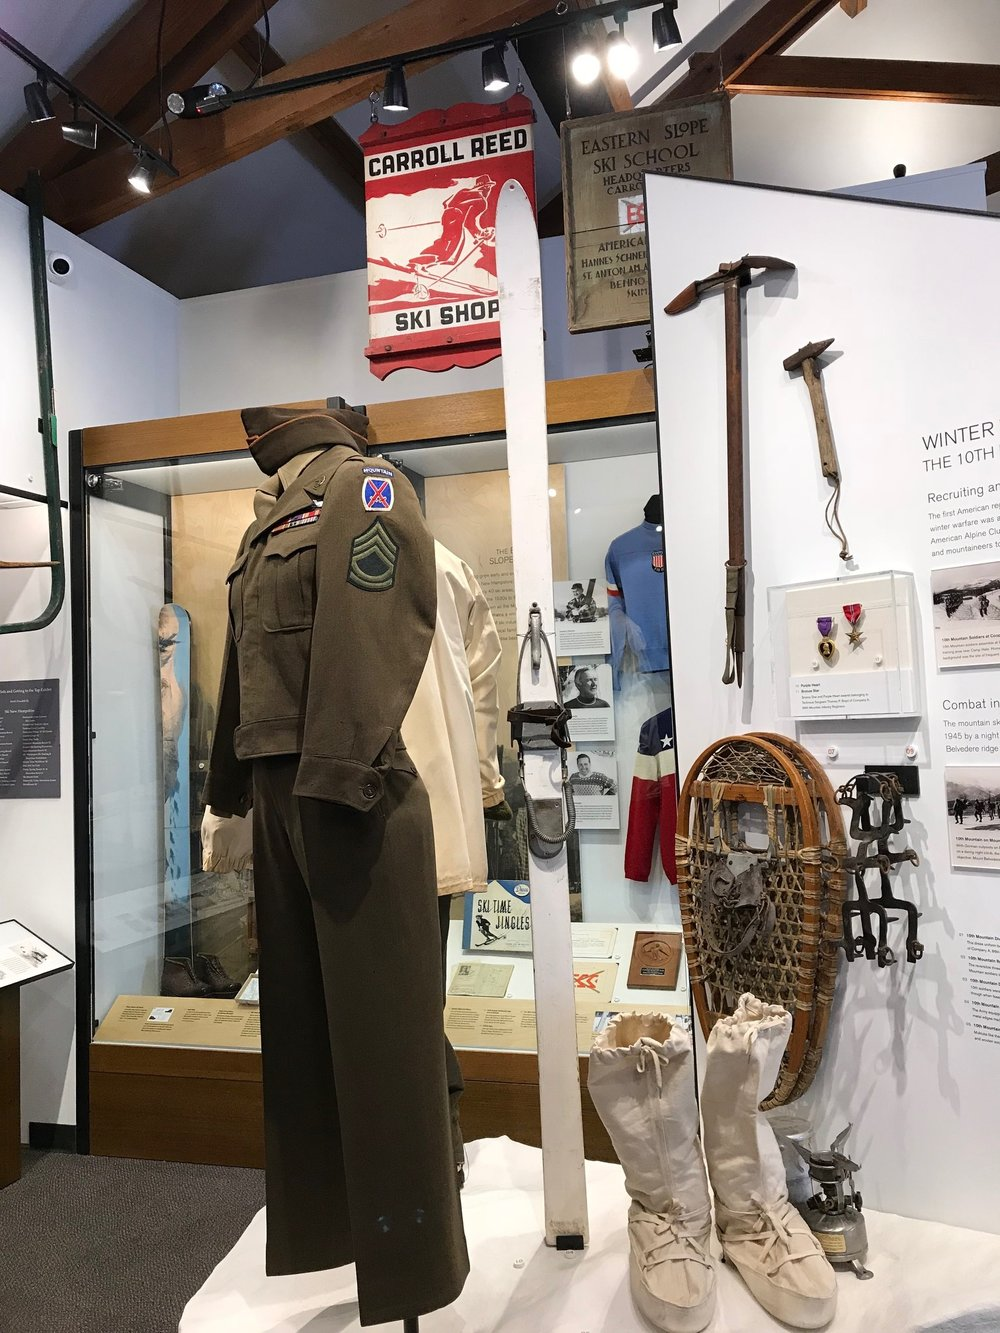 10th Mt. Division display